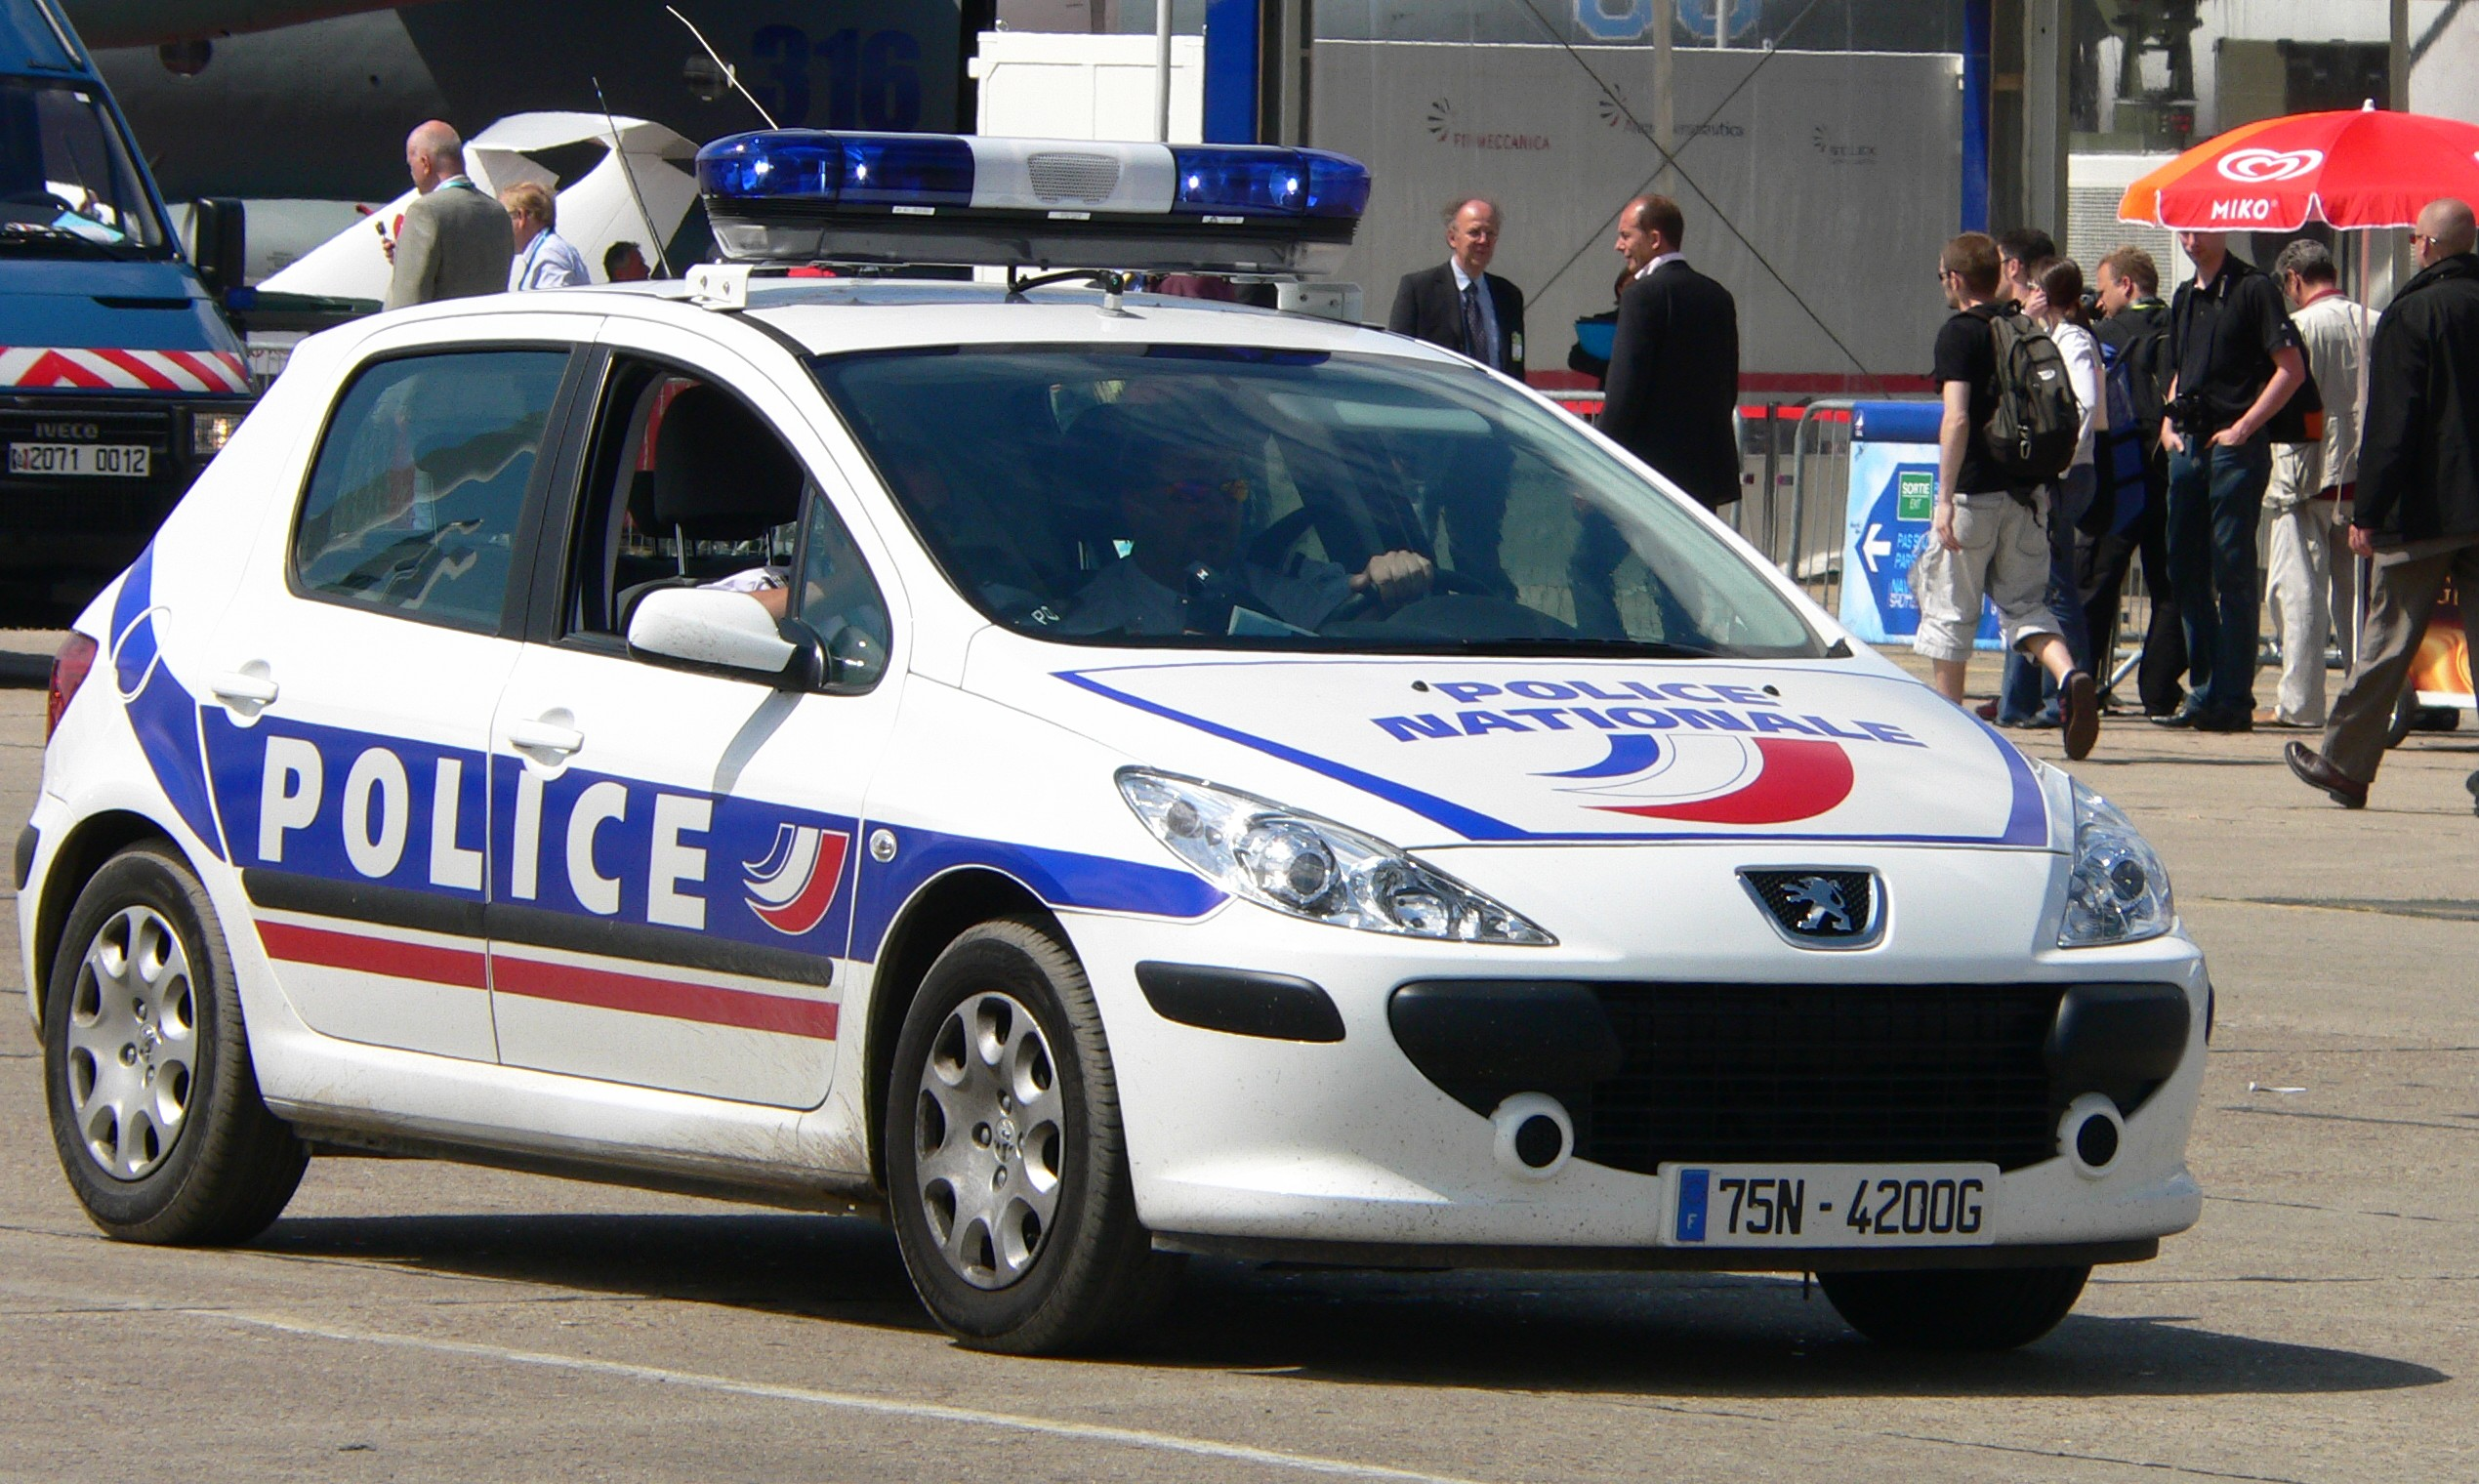 http://static.s-sfr.fr/media/french_police_p1230006-13.jpg